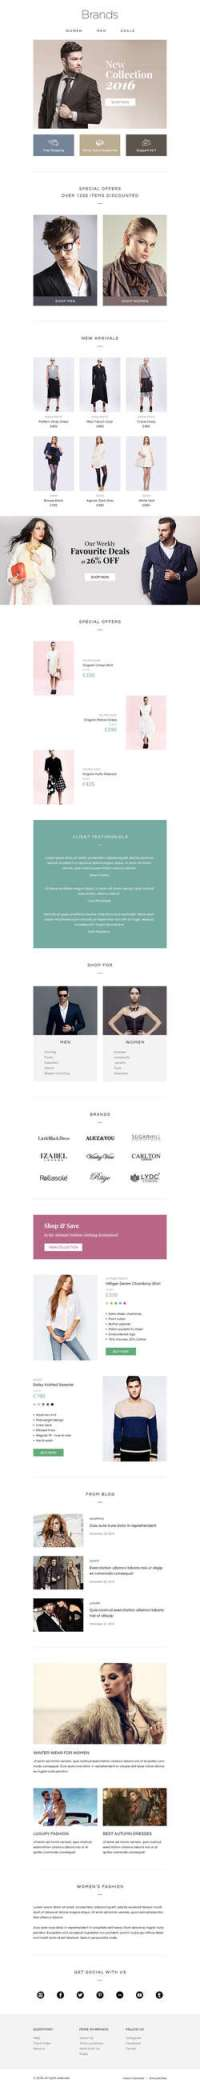 Brands - eCommerce Responsive Email Template